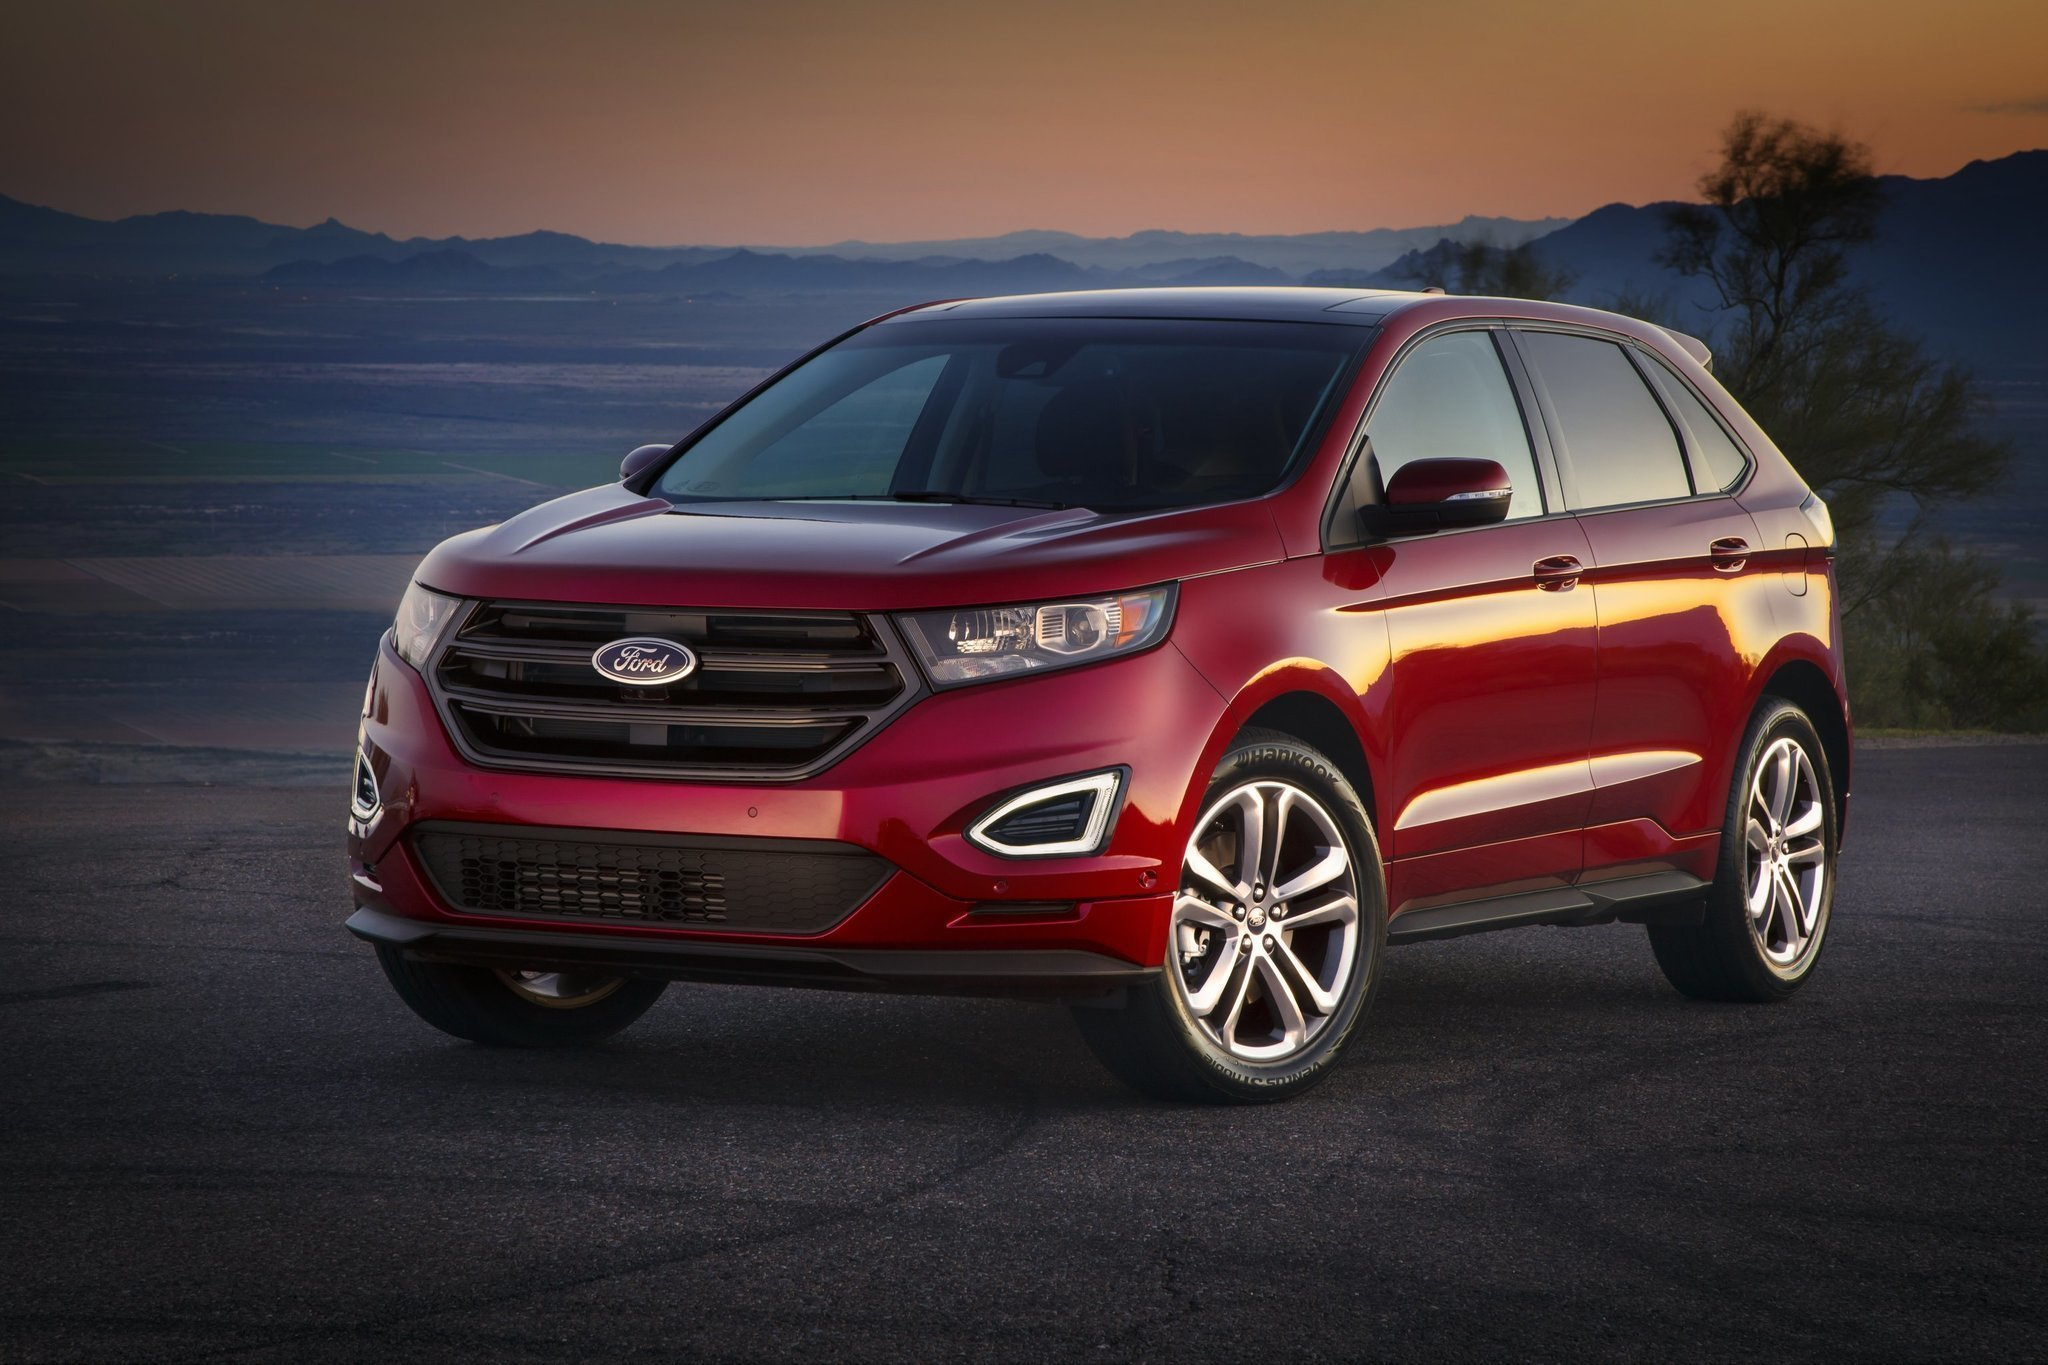 Ford Hones Redesigned Edge For Refinement And Features The Sango Union Tribune